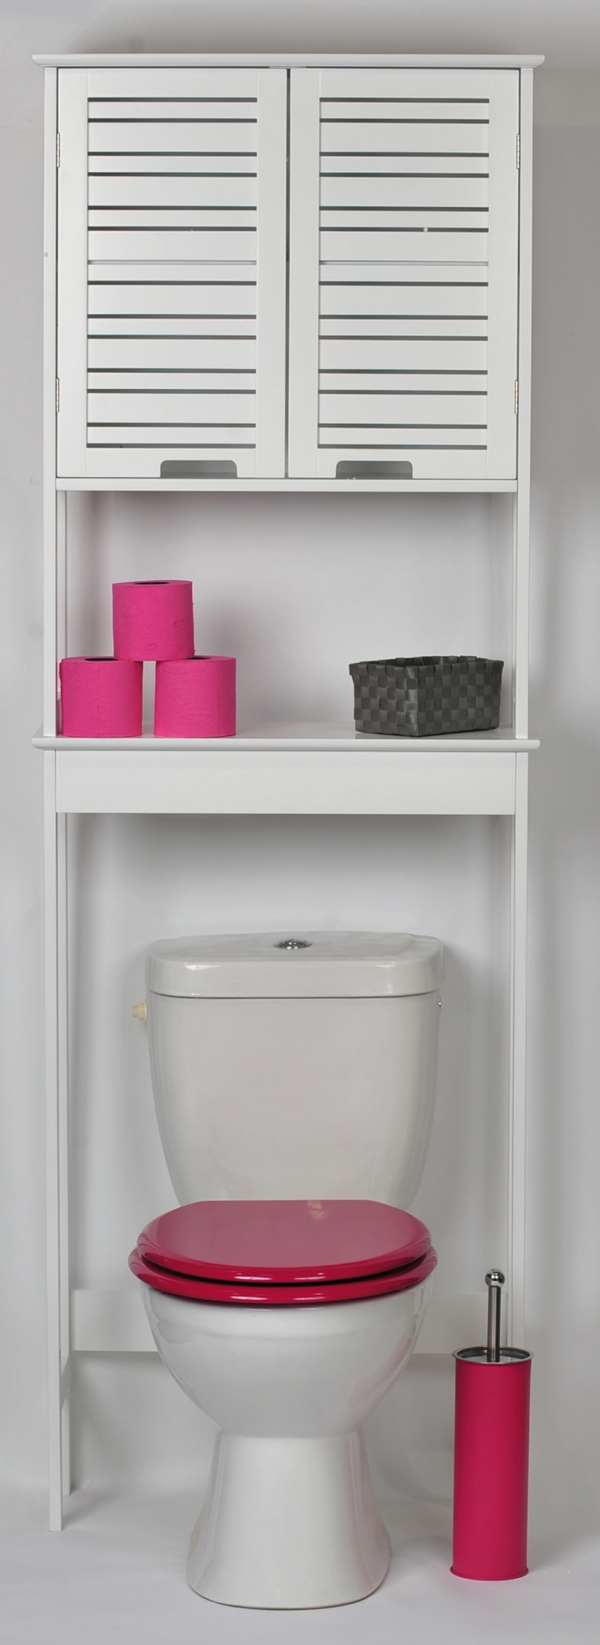 Petit meuble wc fashion designs for Meuble wc gifi